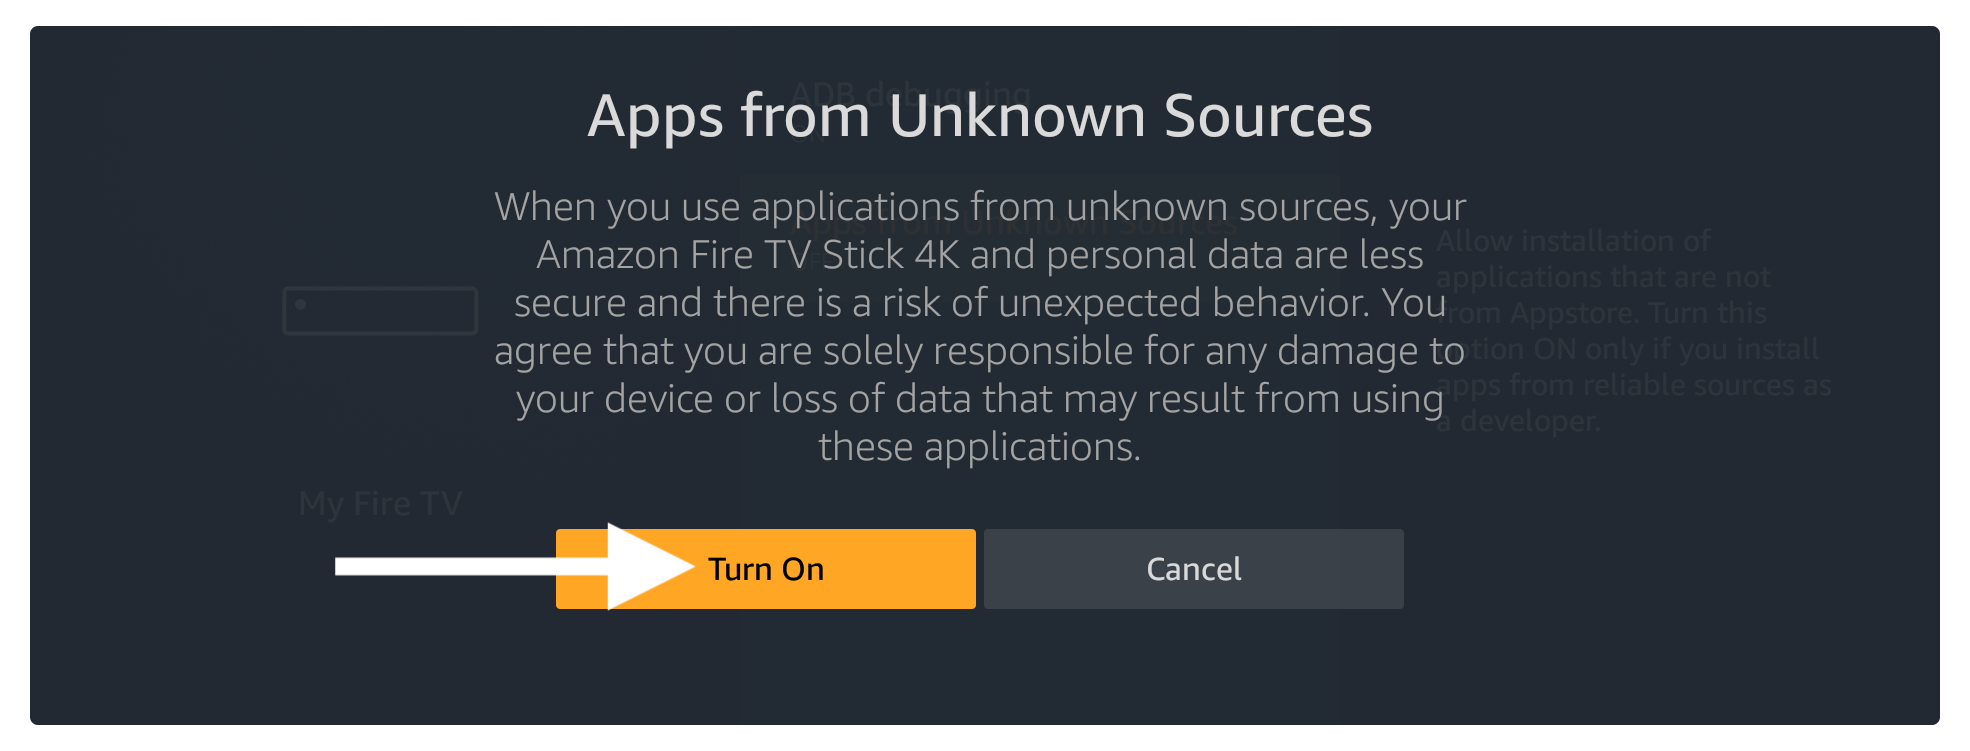 netflix-ask-for-enable-the-Unknown-Source-option-in-firestick